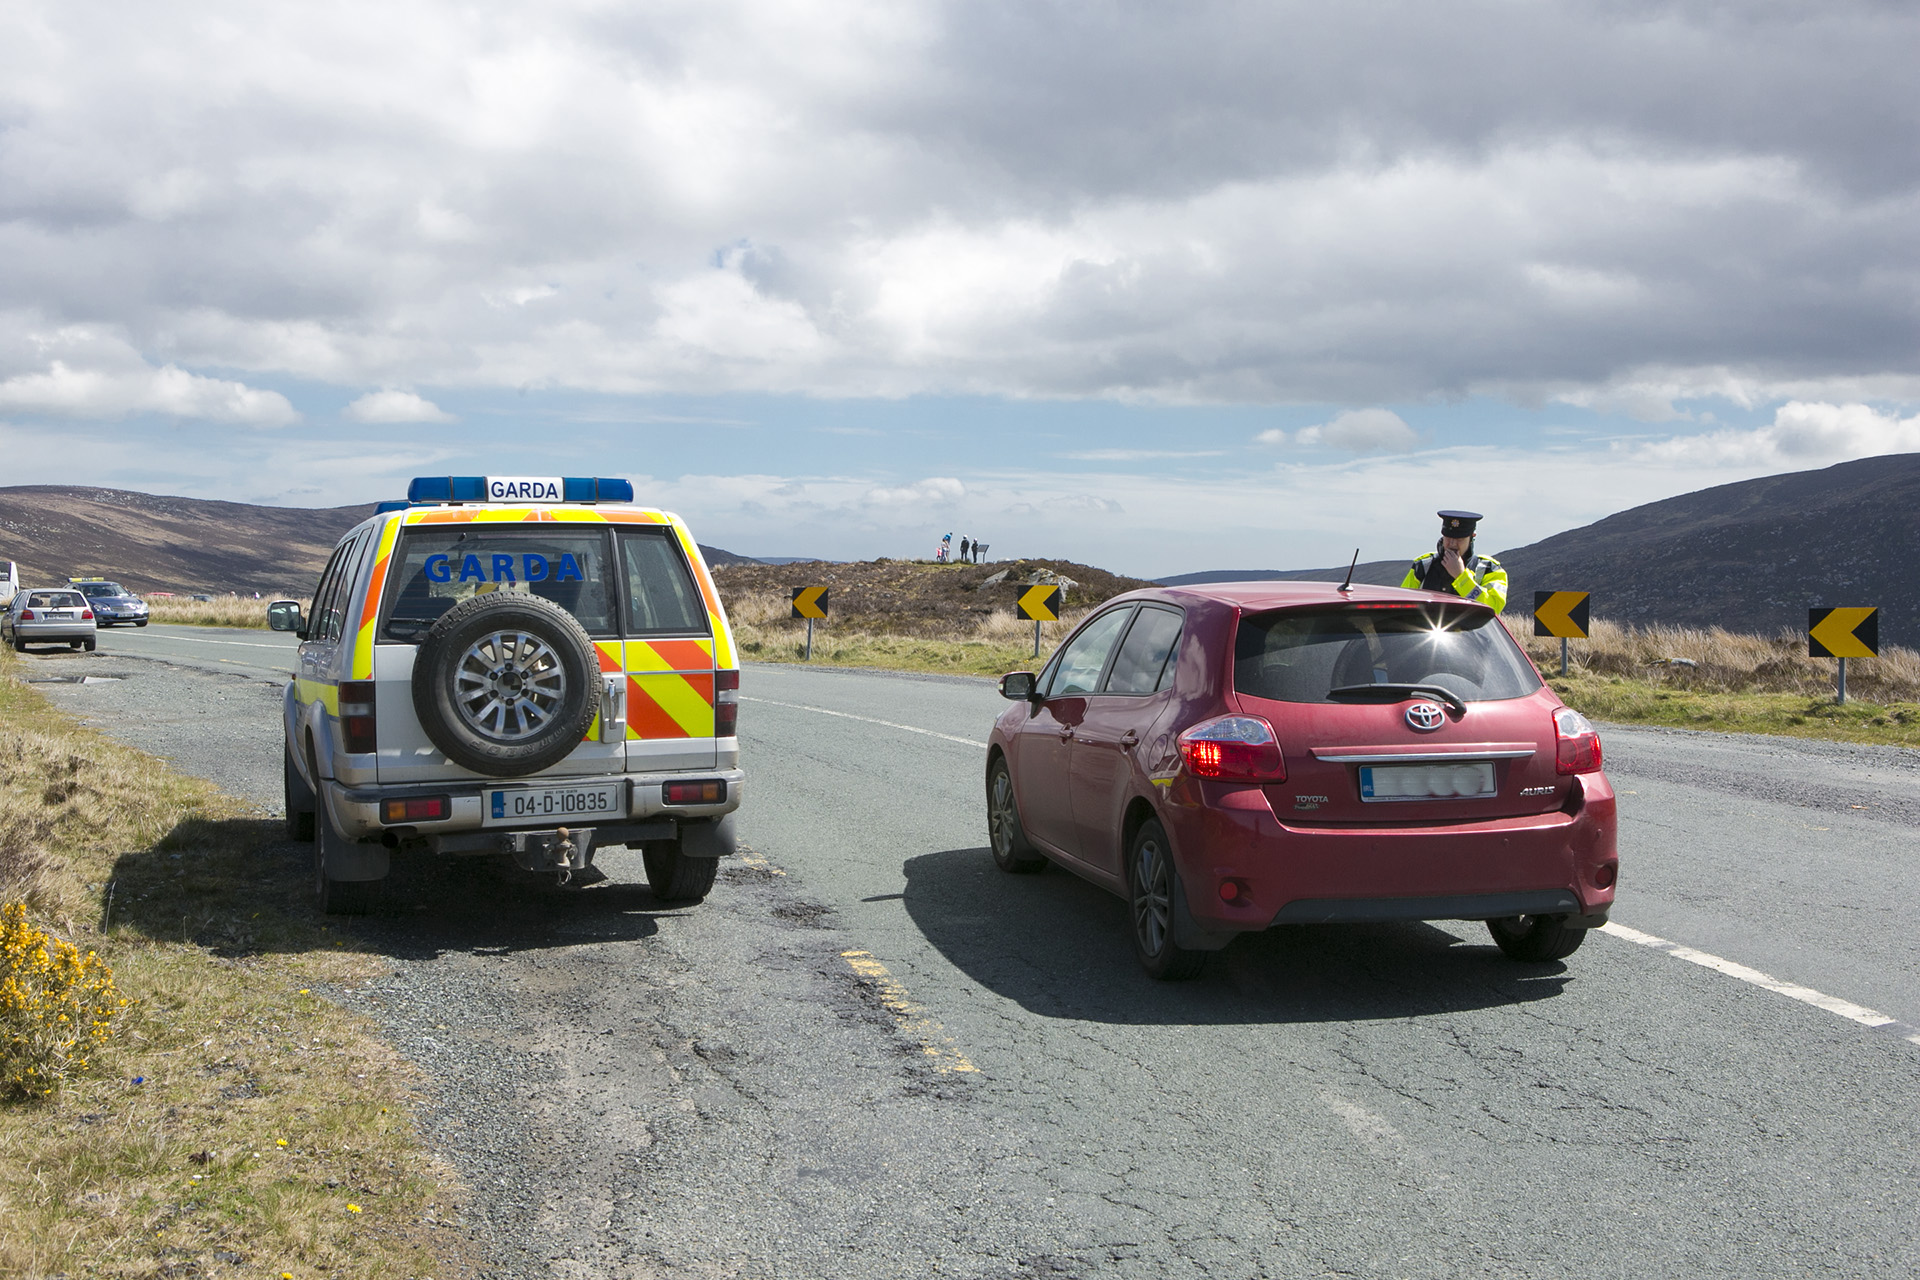 A Garda stopping a motorist as part of Operation Thor